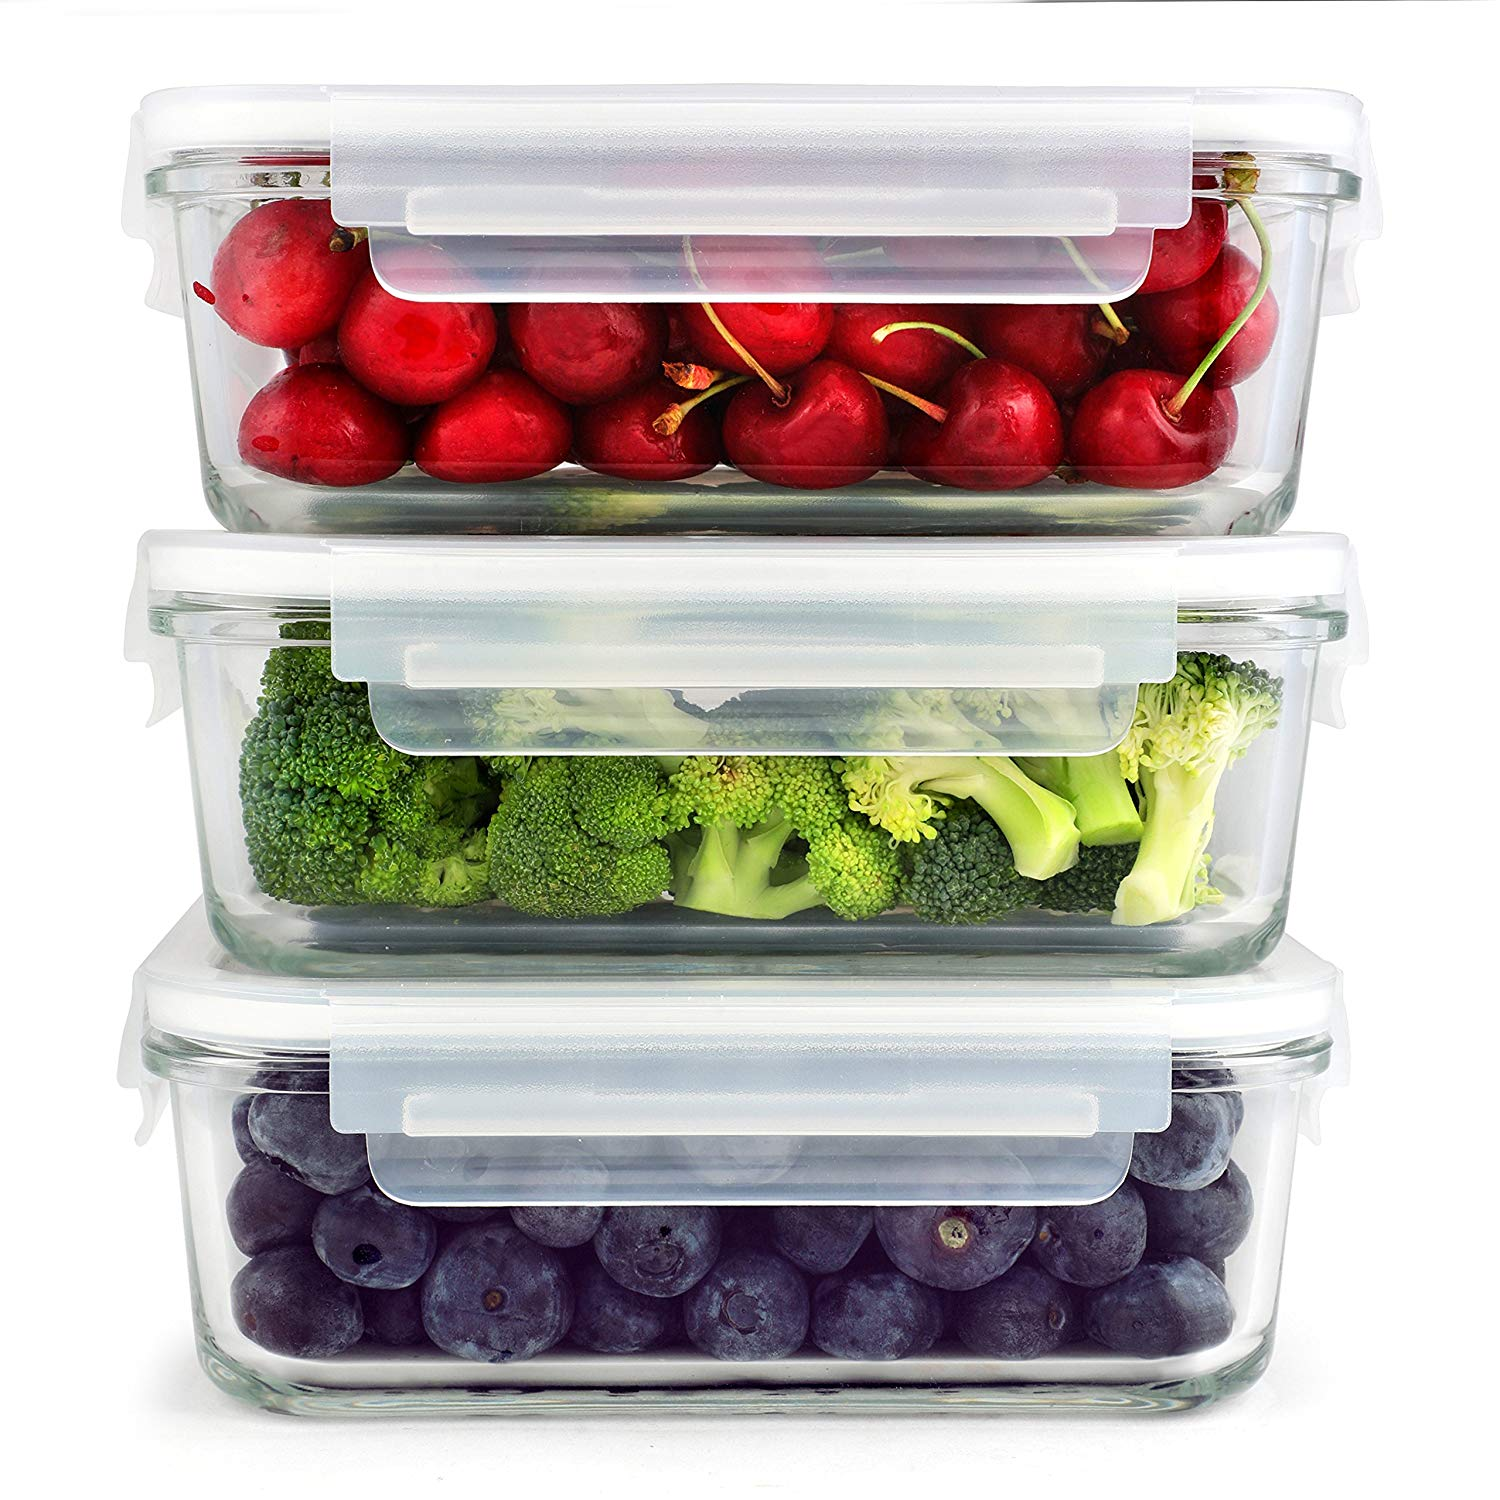 SETS SIMPLYESTA Glass Storage Containers